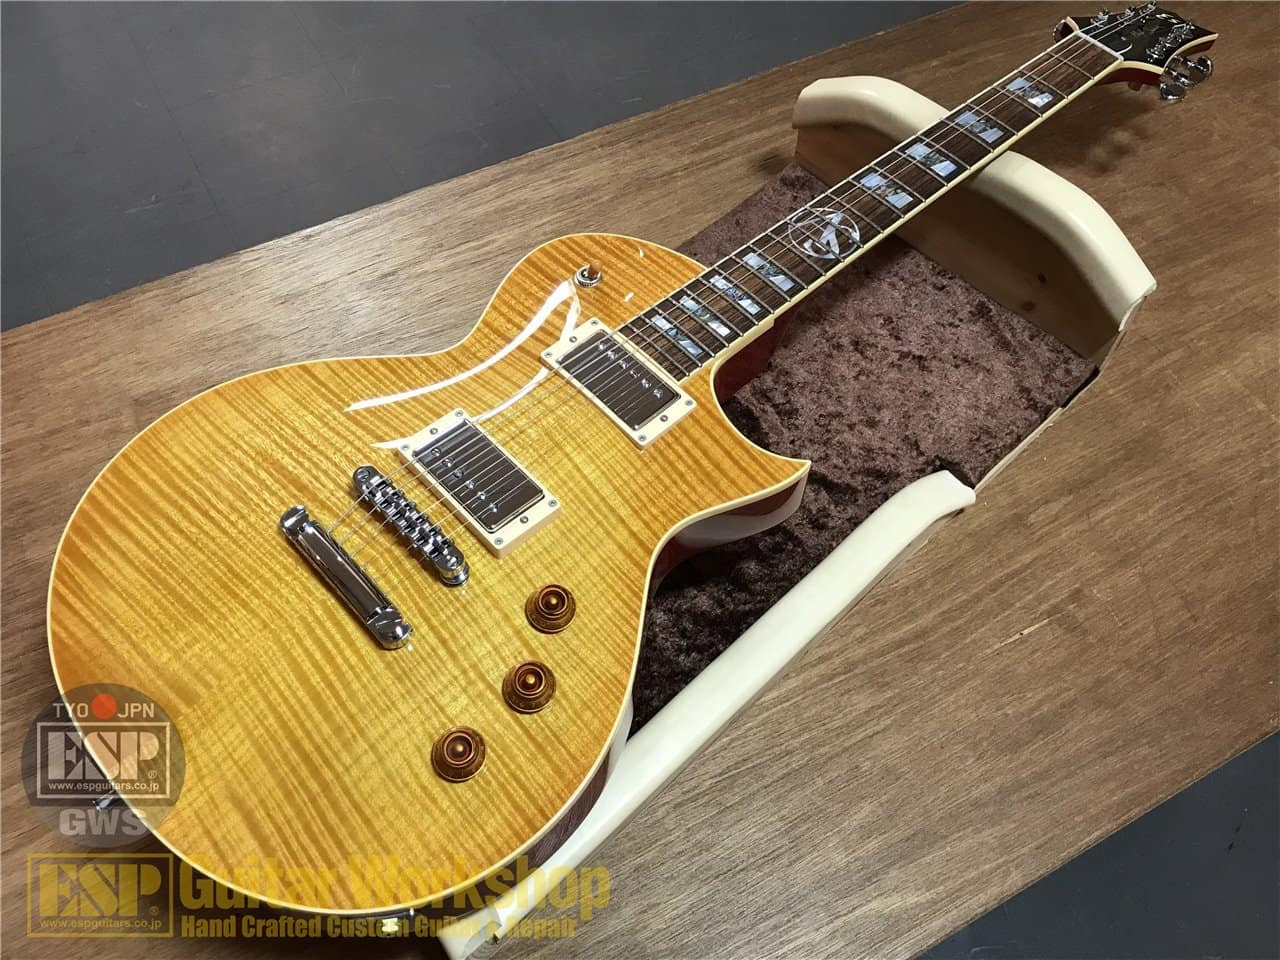 【即納可能】ESP (イーエスピー) Alex Skolnick Model ALEX SKOLNICK /Lemon Burst GWS